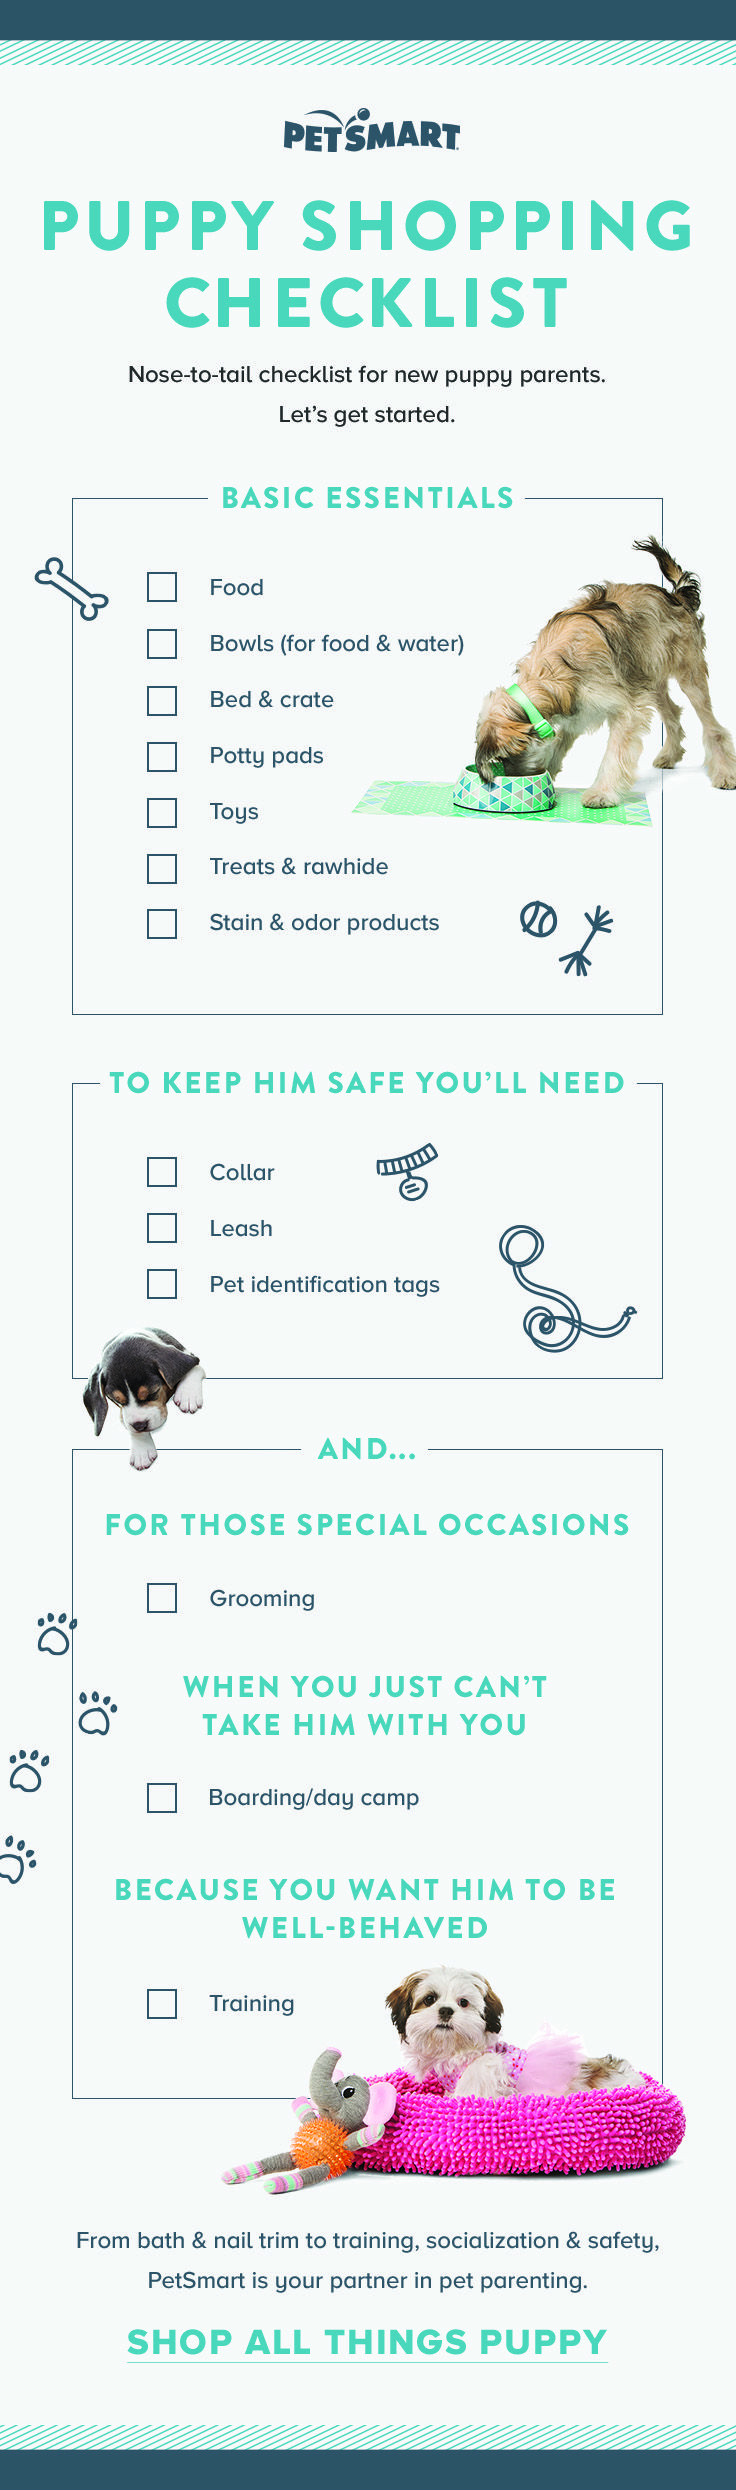 Are You The Pet Parent Of A New Puppy Pin Print Or Favorite This Puppy Shopping Checklist To Take The Guesswork Out Of What Your With Images New Puppy Puppy Care